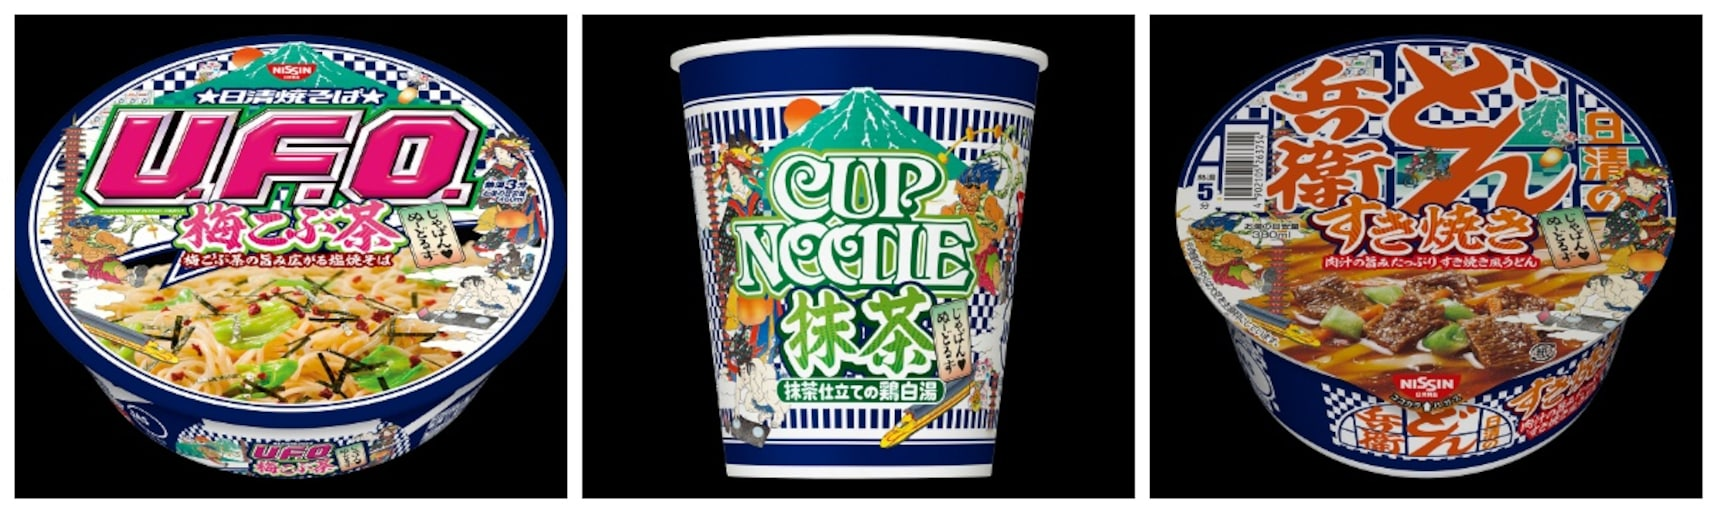 Check Out These Wild New Cup Noodle Flavors